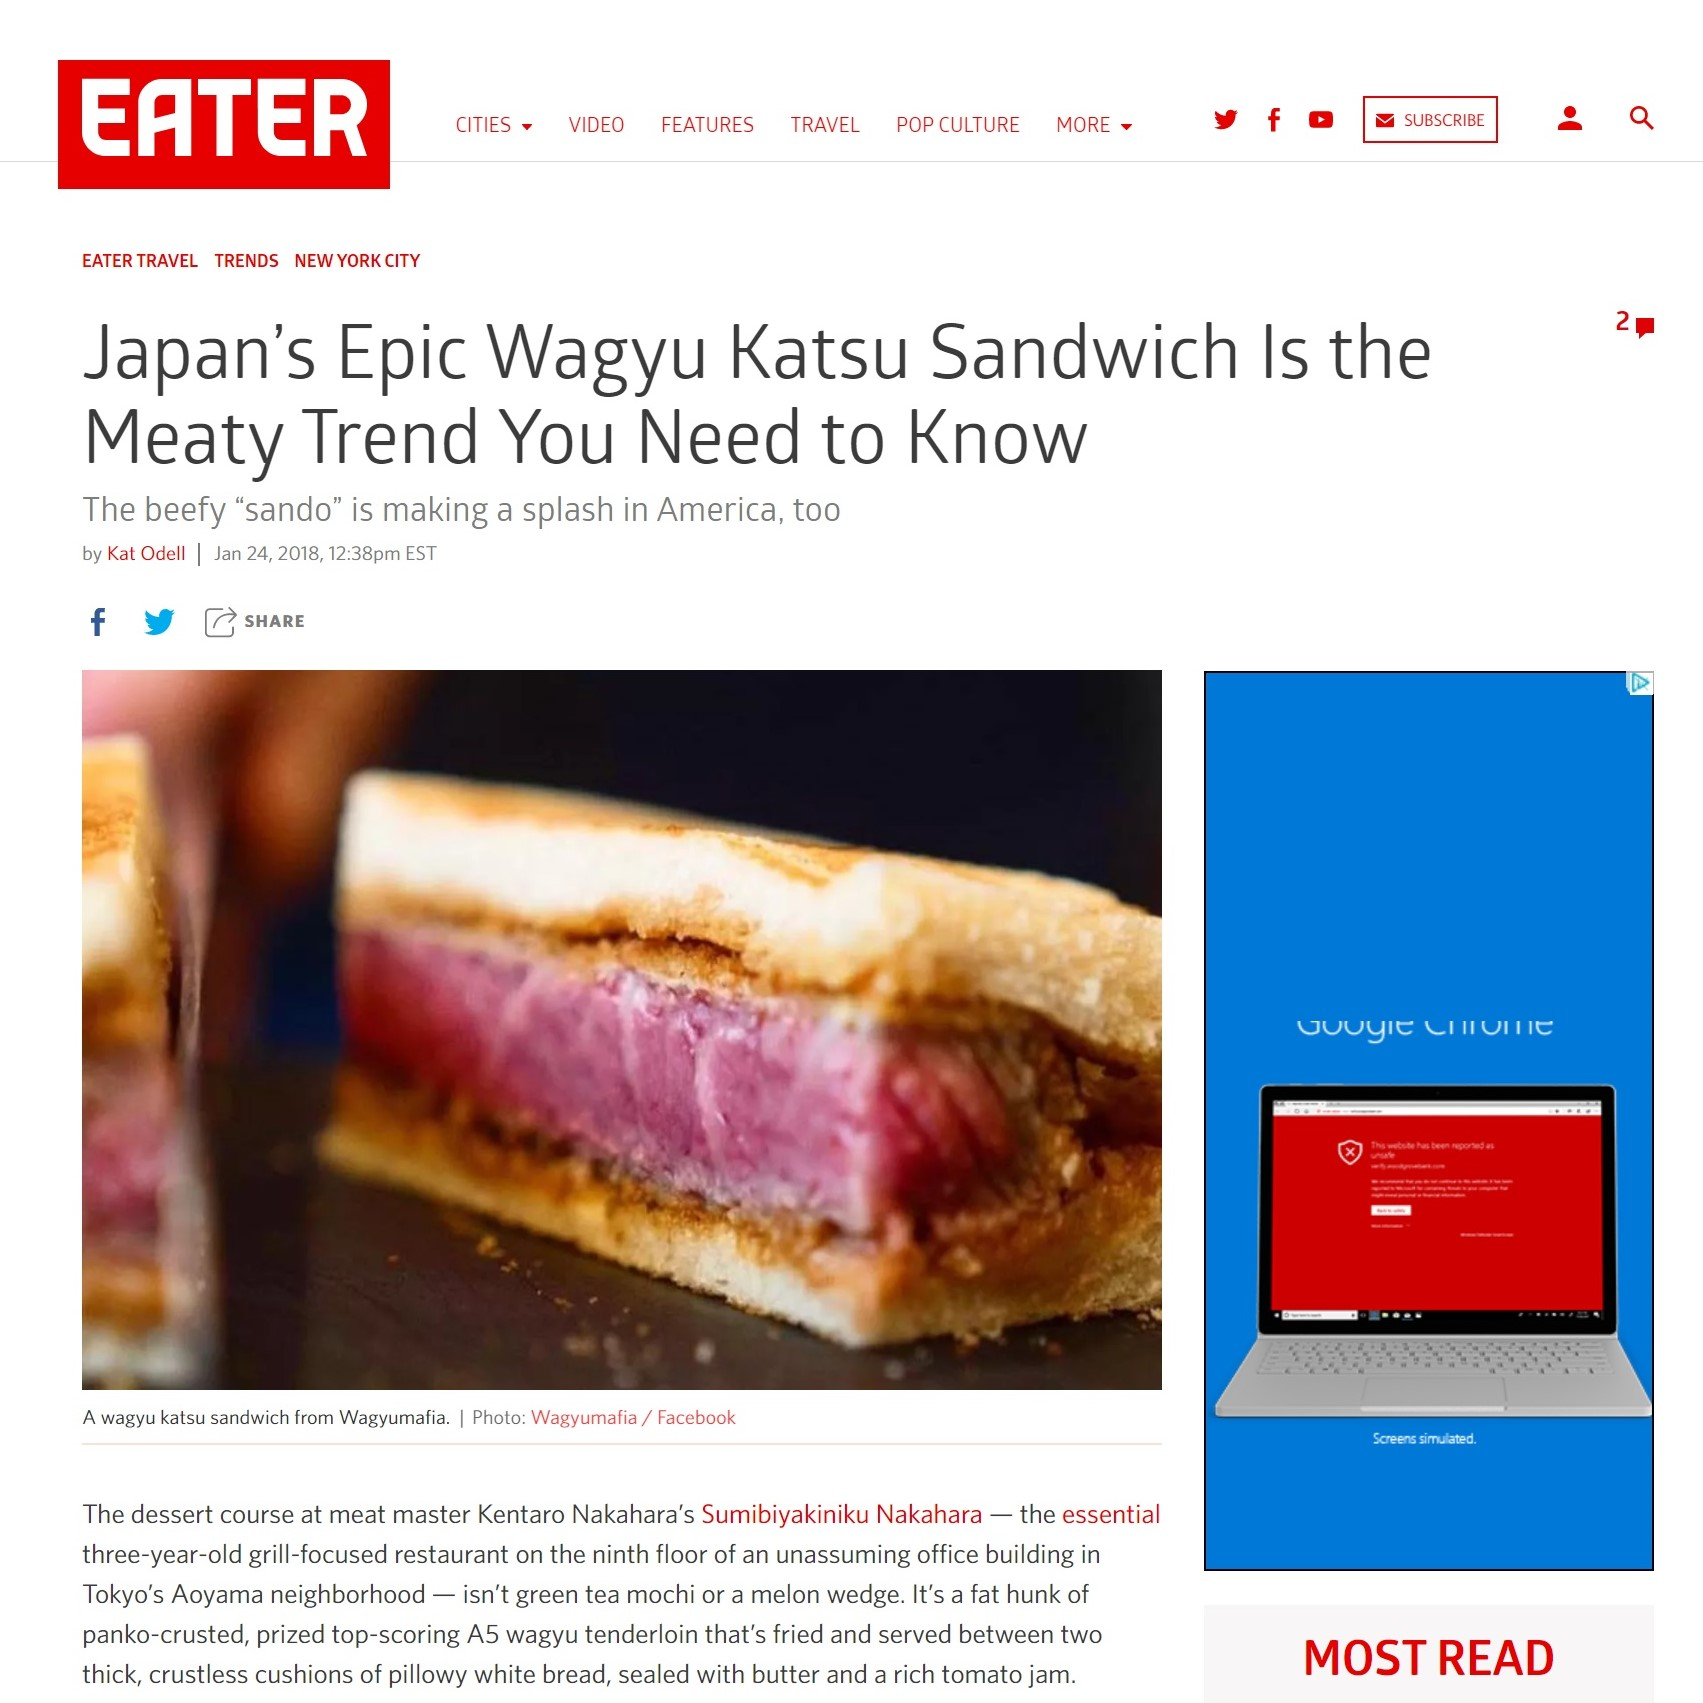 Eater - Japan's Epic Wagyu Katsu Sandwich Is the Meaty Trend You Need to Know